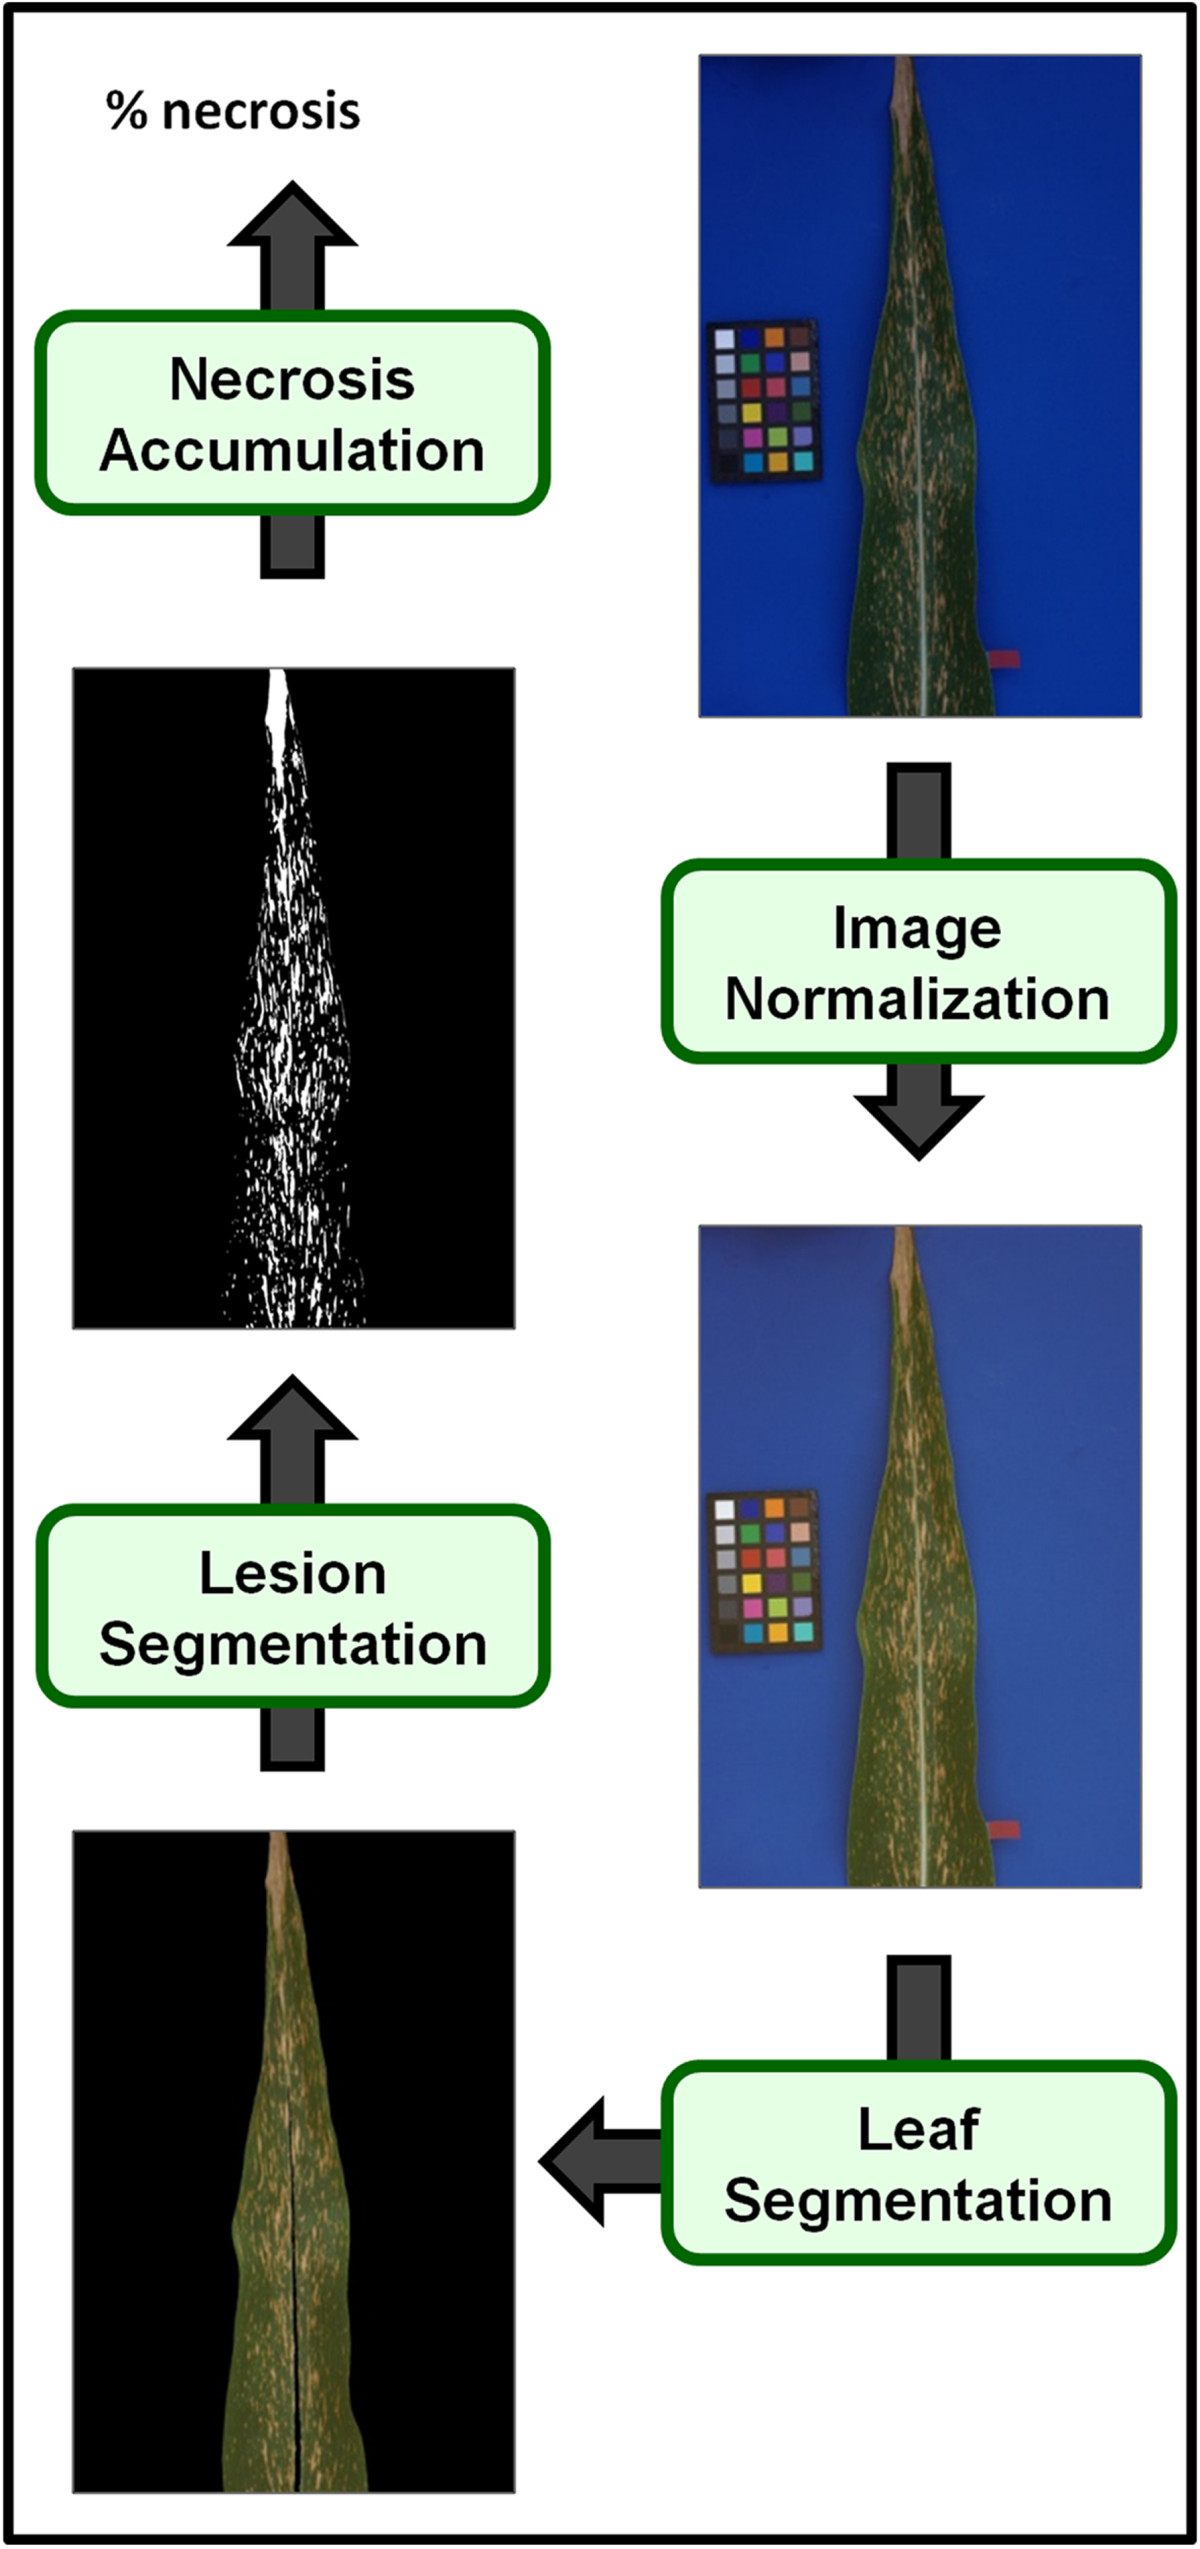 http://static-content.springer.com/image/art%3A10.1186%2F1746-4811-8-45/MediaObjects/13007_2012_Article_216_Fig6_HTML.jpg